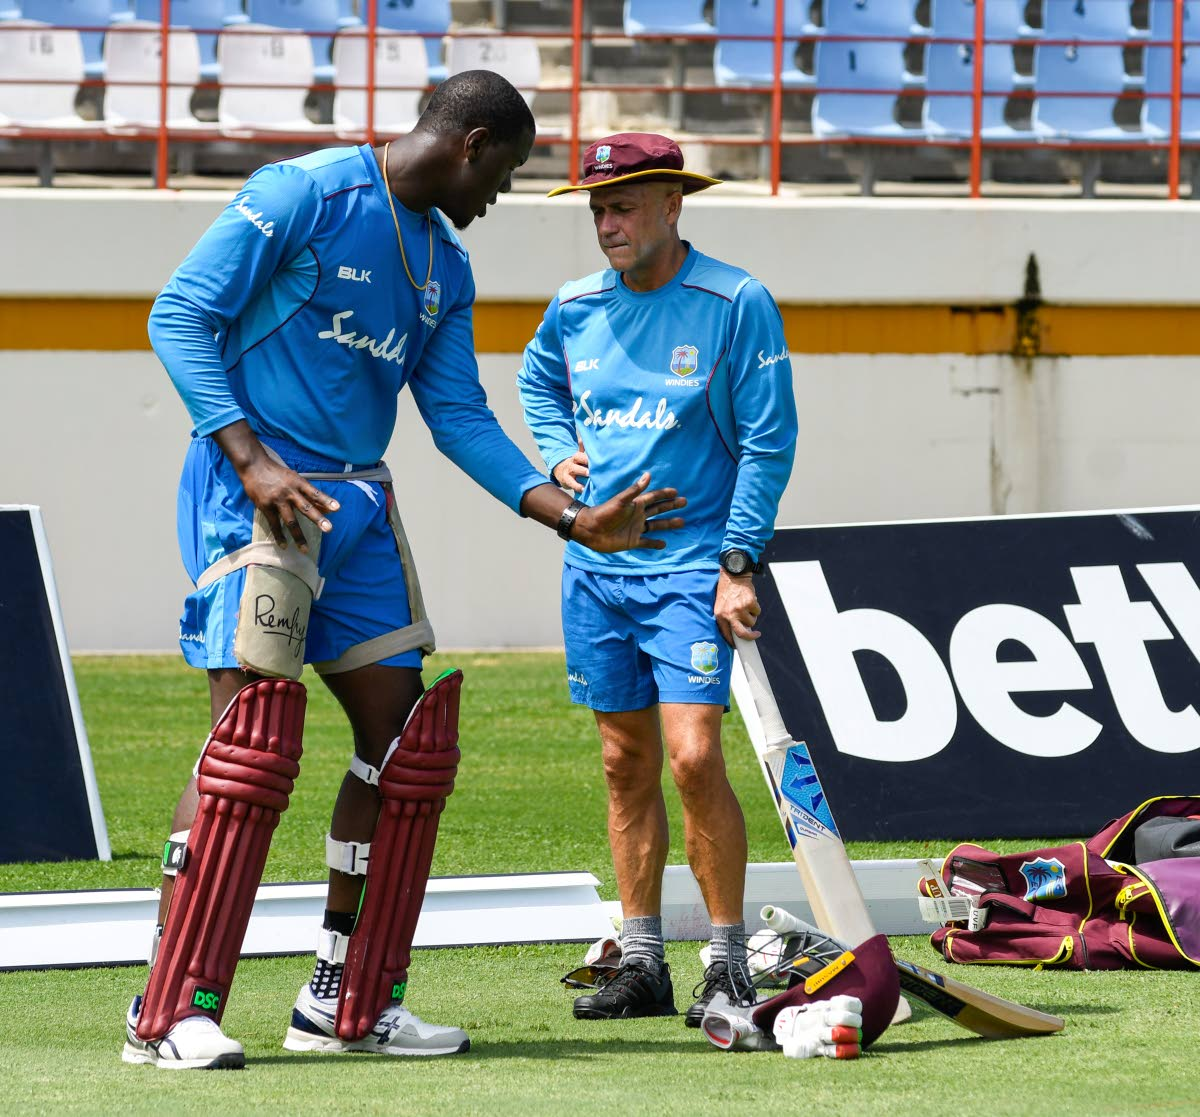 In this file photo, Carlos Brathwaite (L) and Richard Pybus (R) of West Indies take part in a training session one day ahead of the first T20I between West Indies and England, at the Darren Sammy Cricket Ground, Gros Islet, Saint Lucia,on March 4. AFP PHOTO